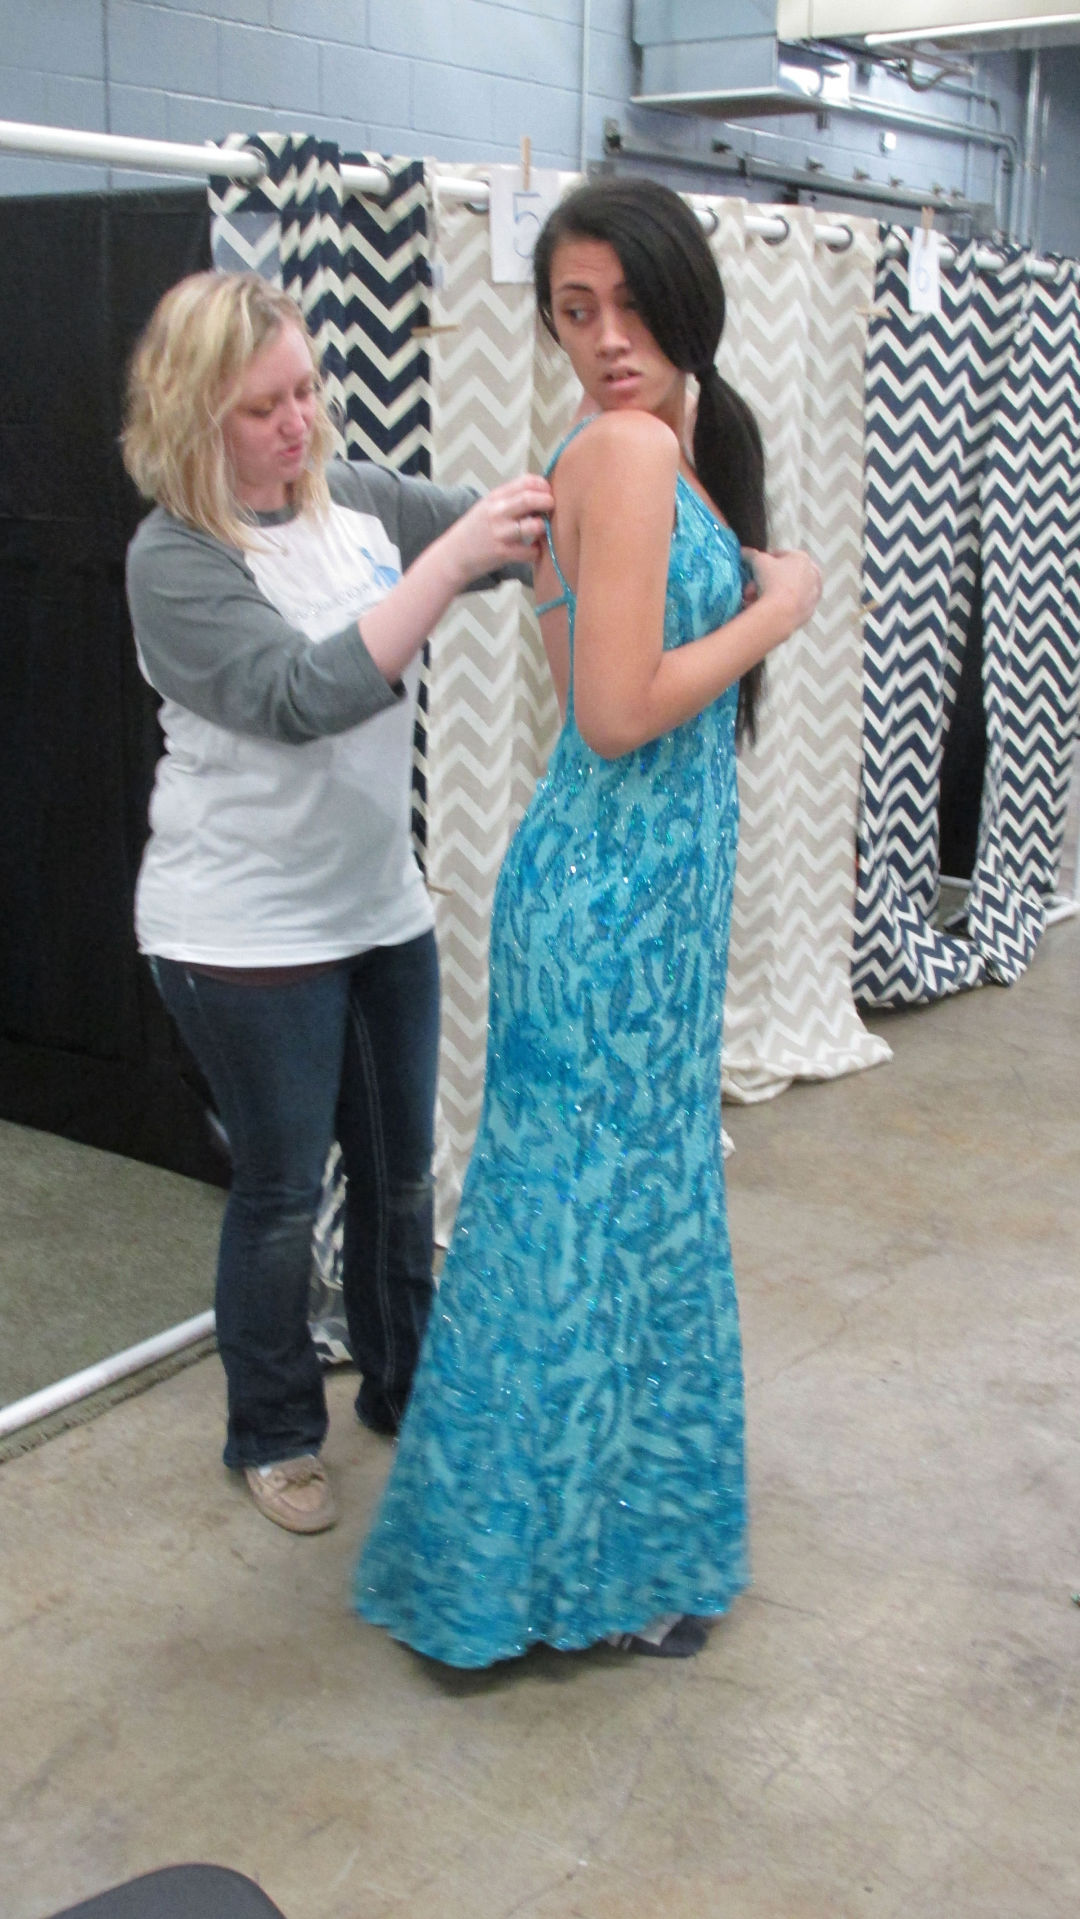 Cinderella\'s Closet makes Prom magical for local teens | Local ...